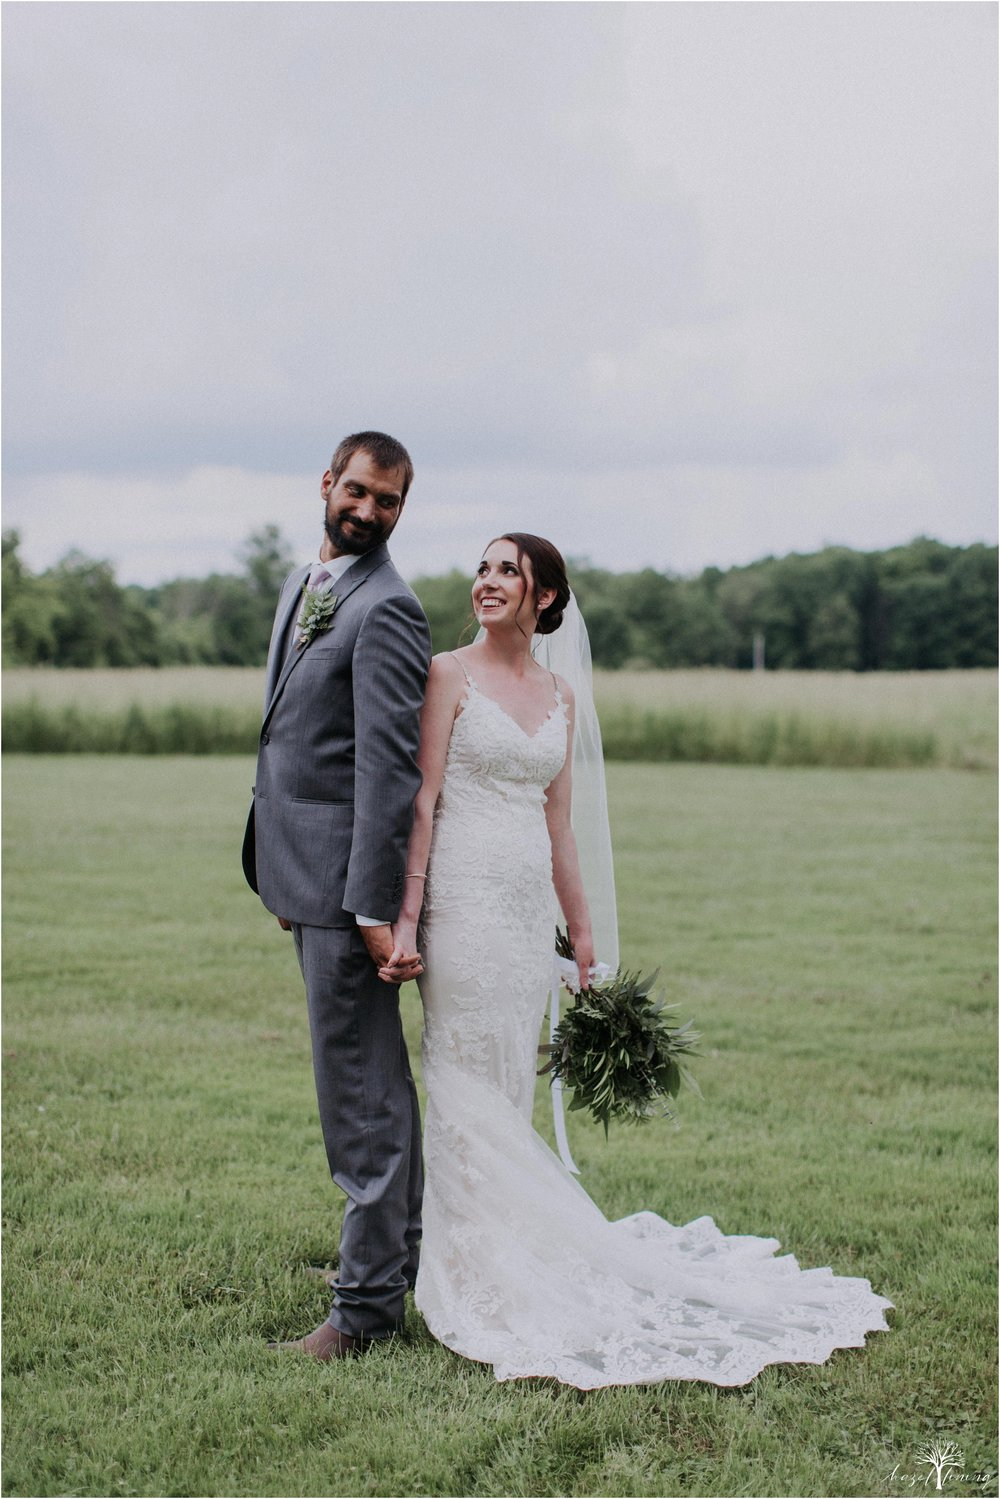 hazel-lining-travel-wedding-elopement-photography-lisa-landon-shoemaker-the-farm-bakery-and-events-bucks-county-quakertown-pennsylvania-summer-country-outdoor-farm-wedding_0090.jpg